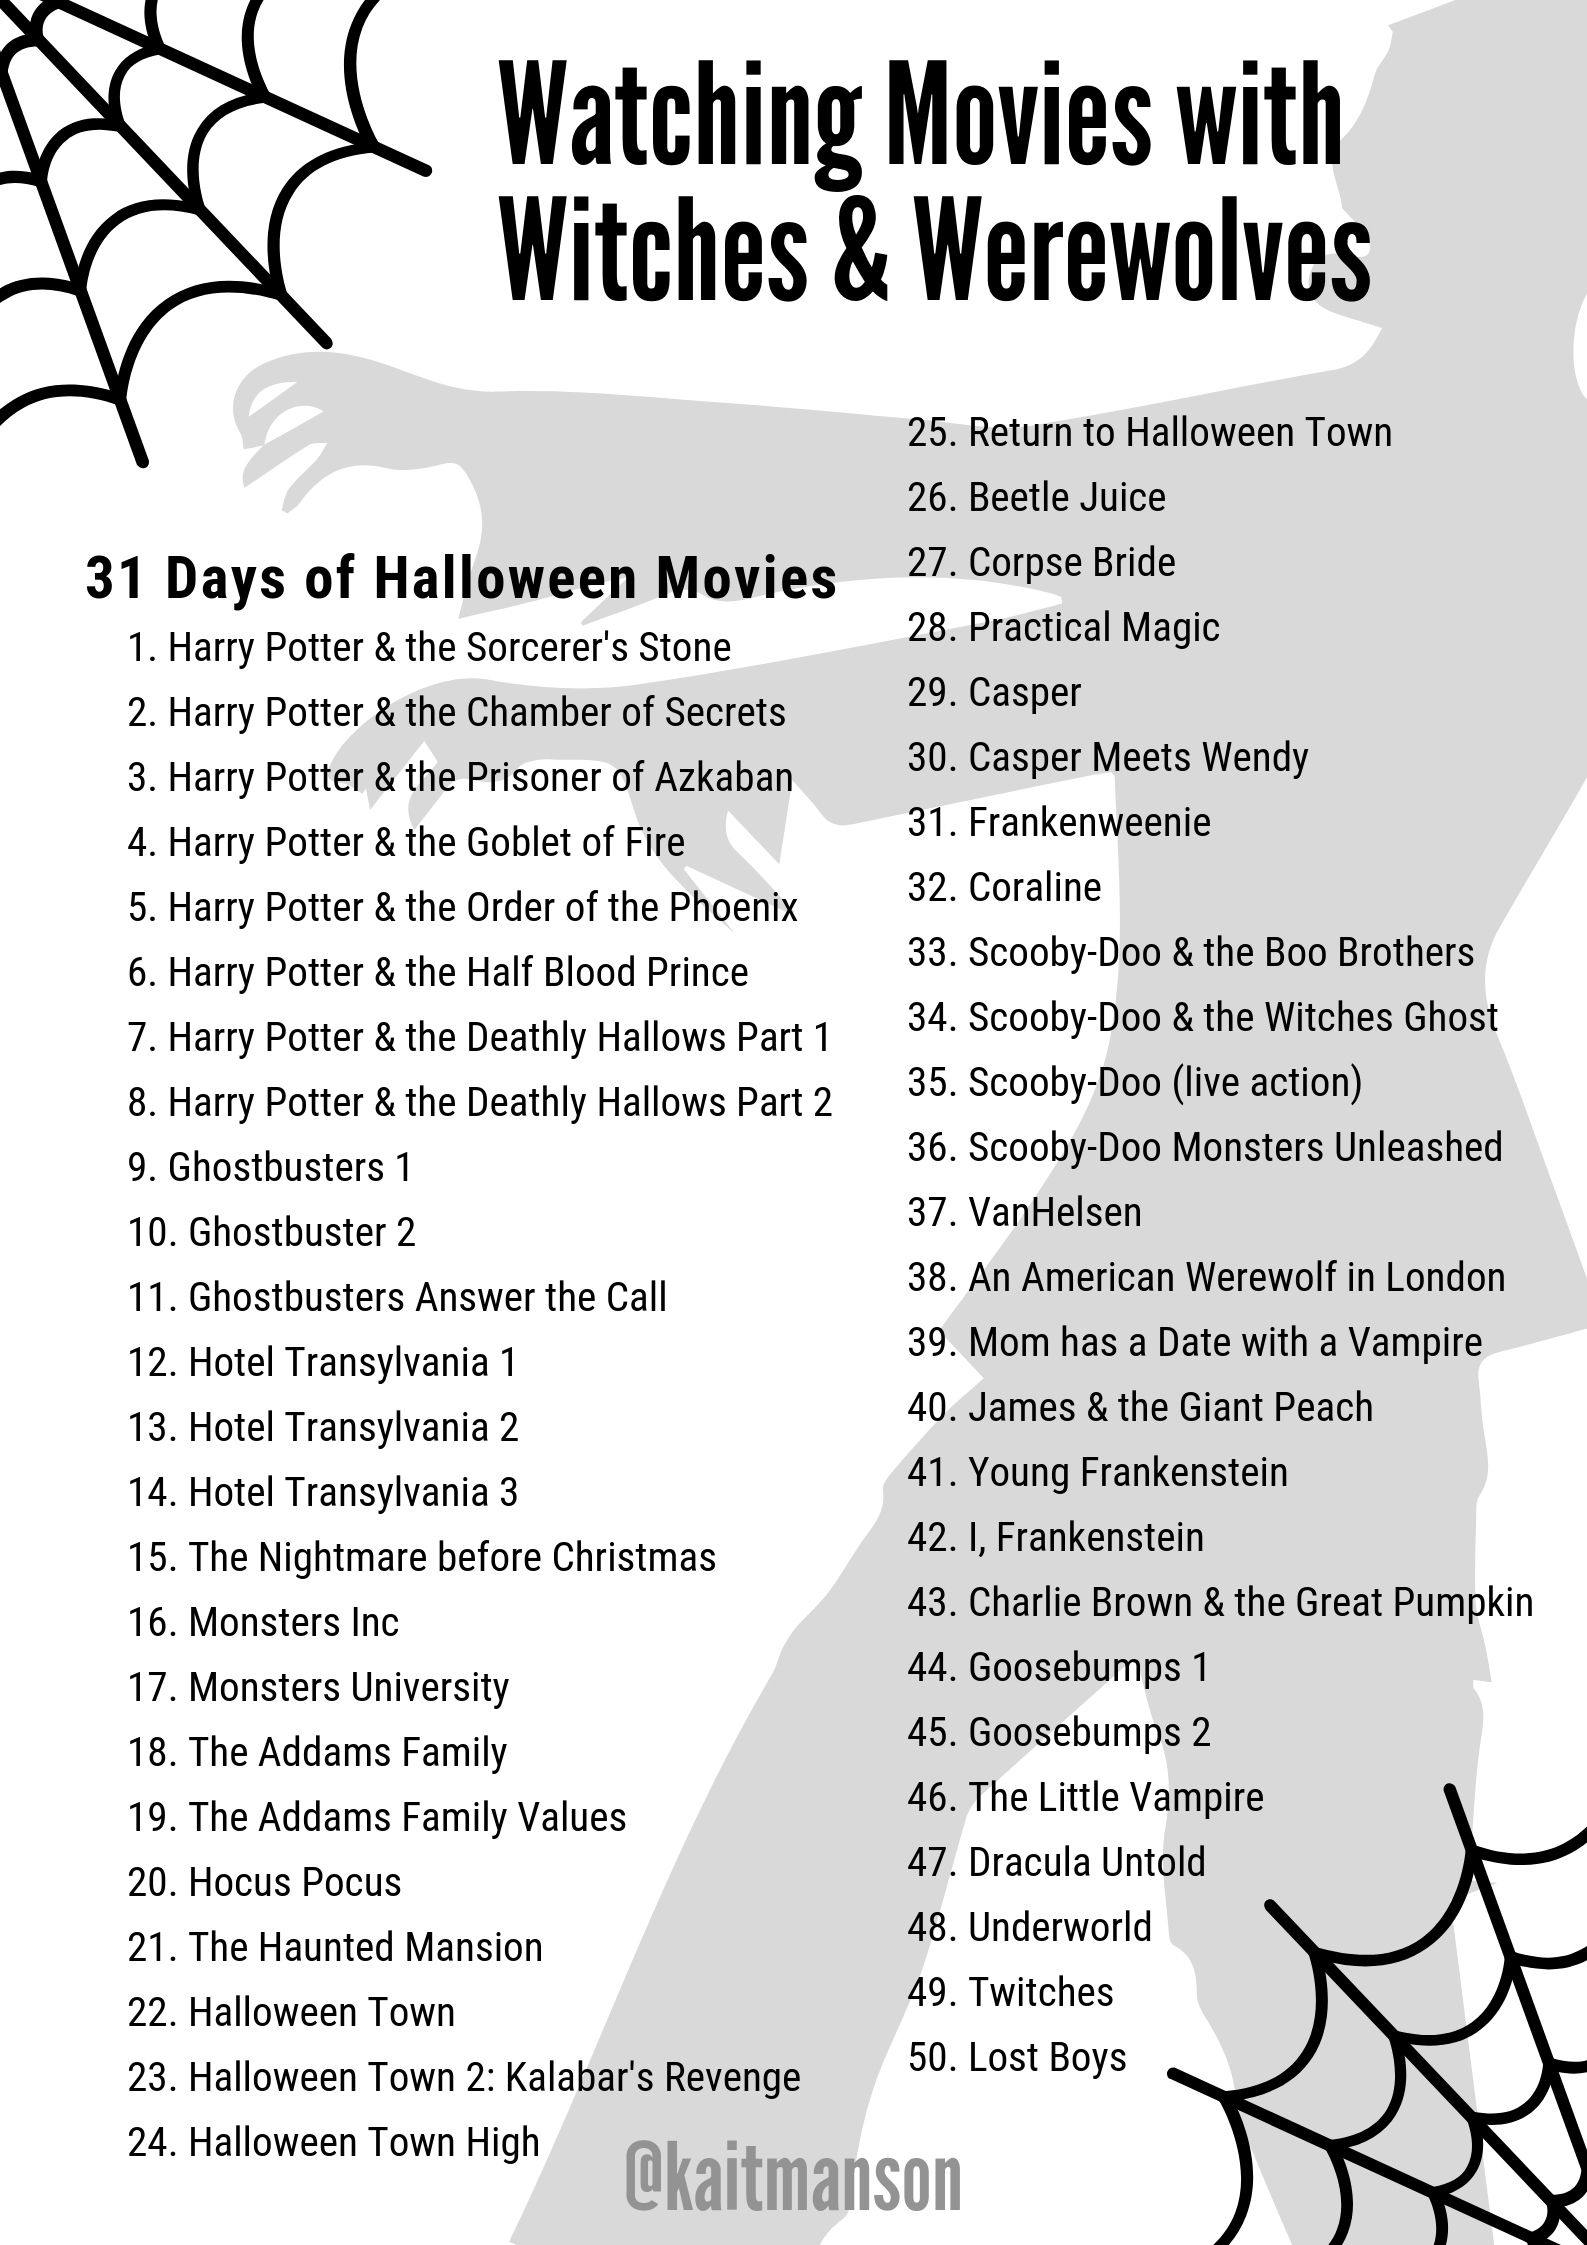 Halloween Watching 2020 31 Days of Halloween Movies in 2020 | Halloween movies, Halloween